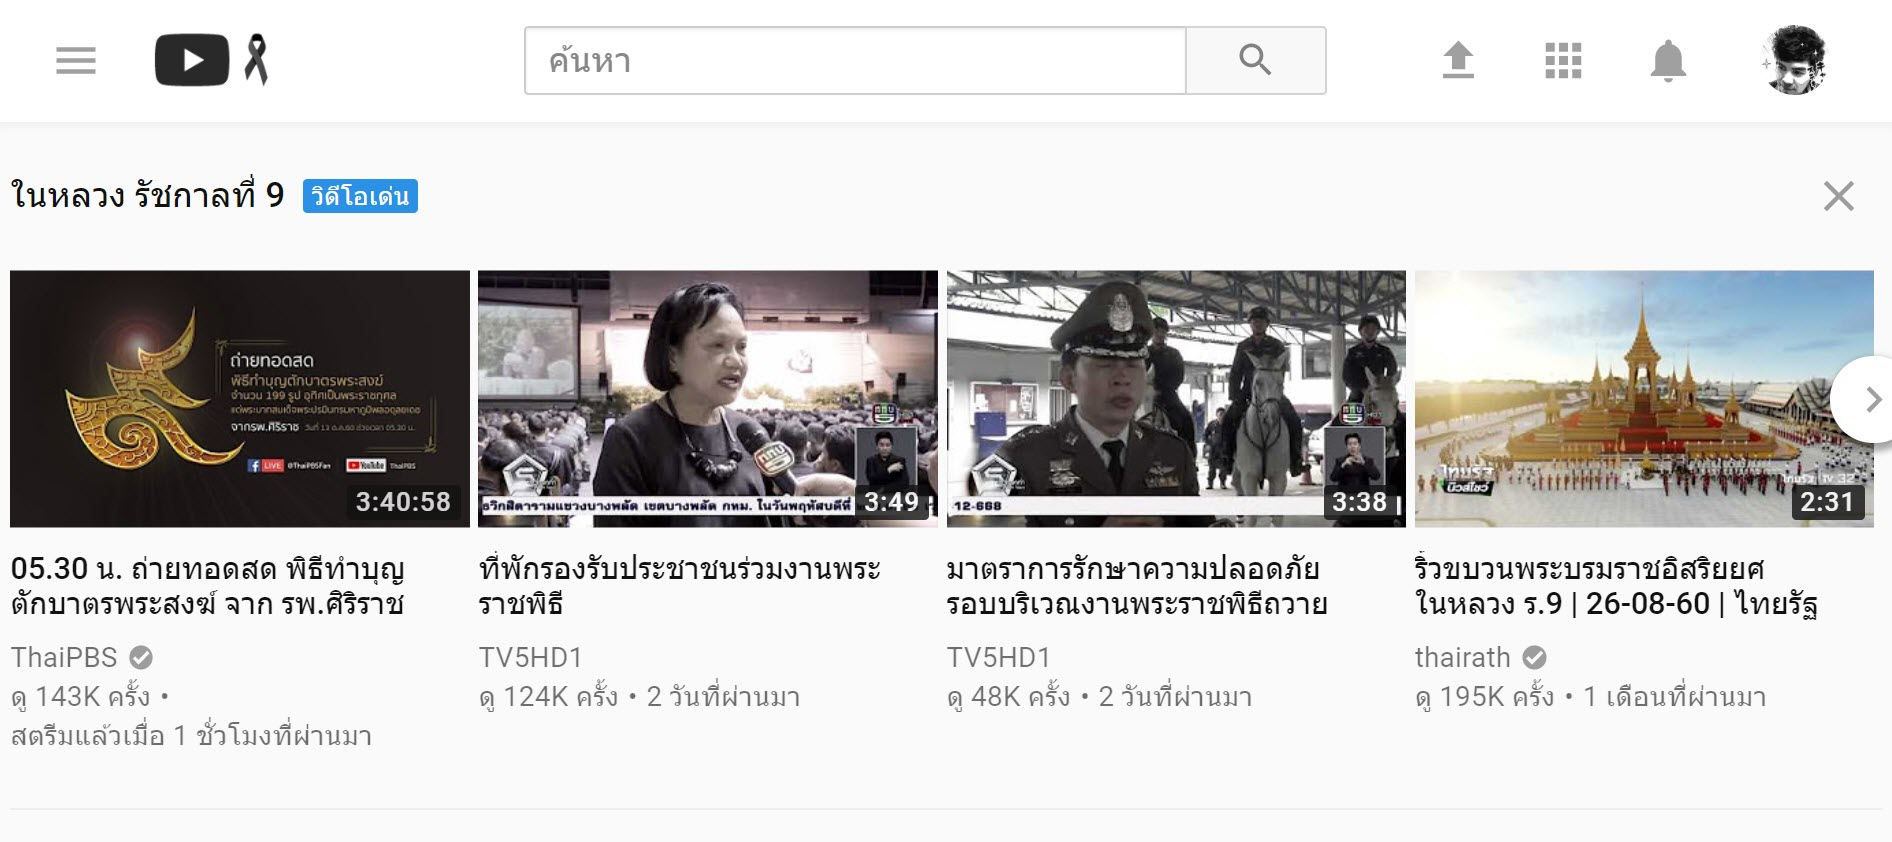 Google Thailand Remembrance 2